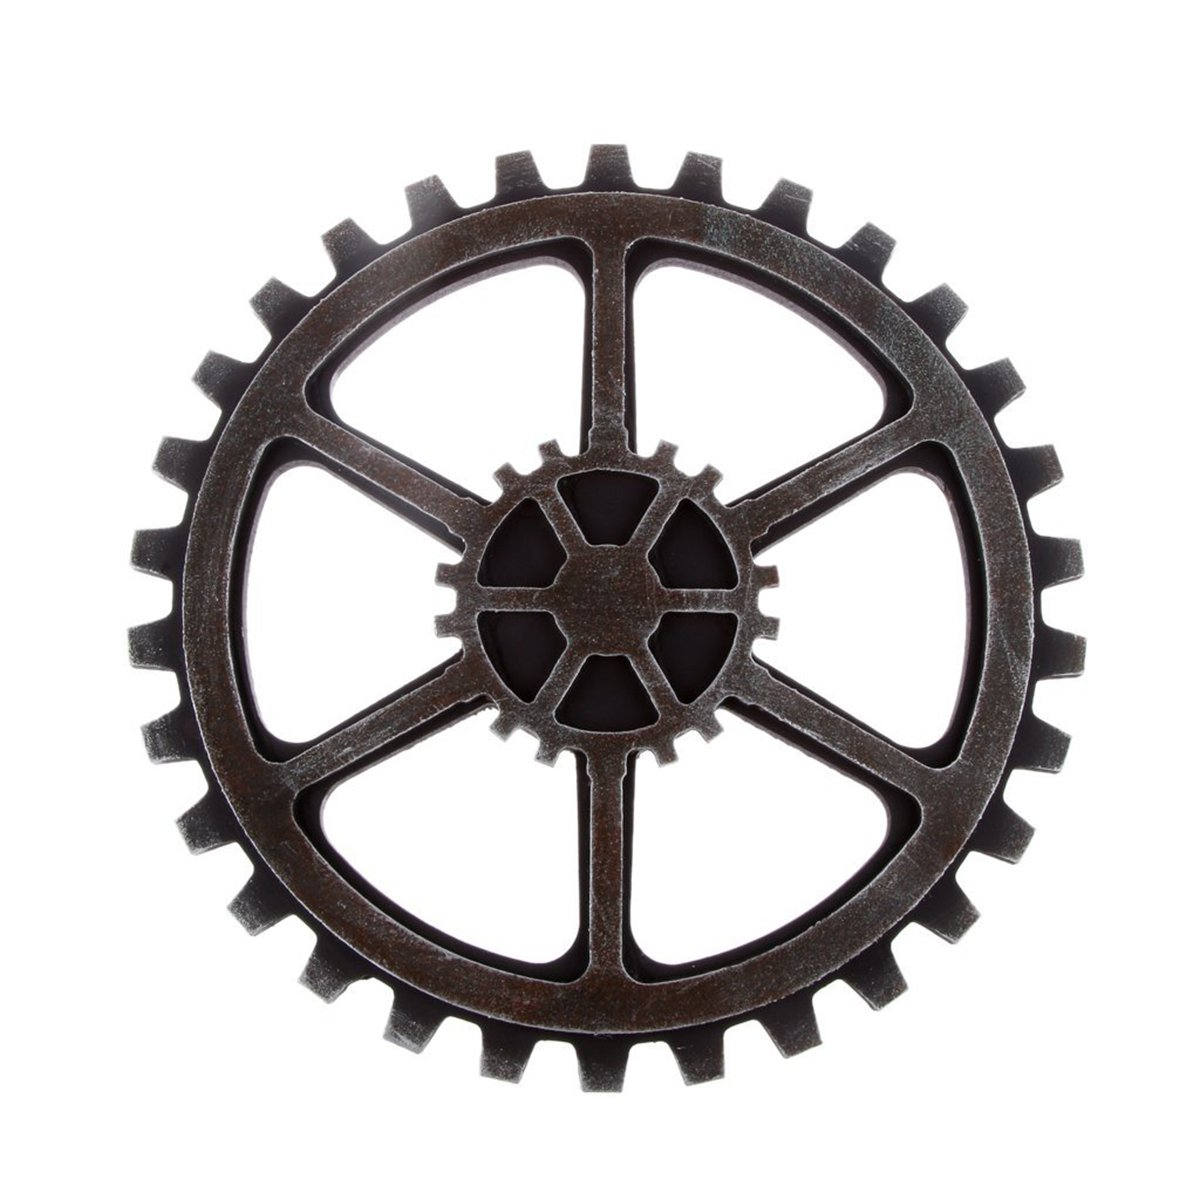 50 off winomo 24cm vintage steampunk gear wheel home bar art craft wall decoration hexagon. Black Bedroom Furniture Sets. Home Design Ideas